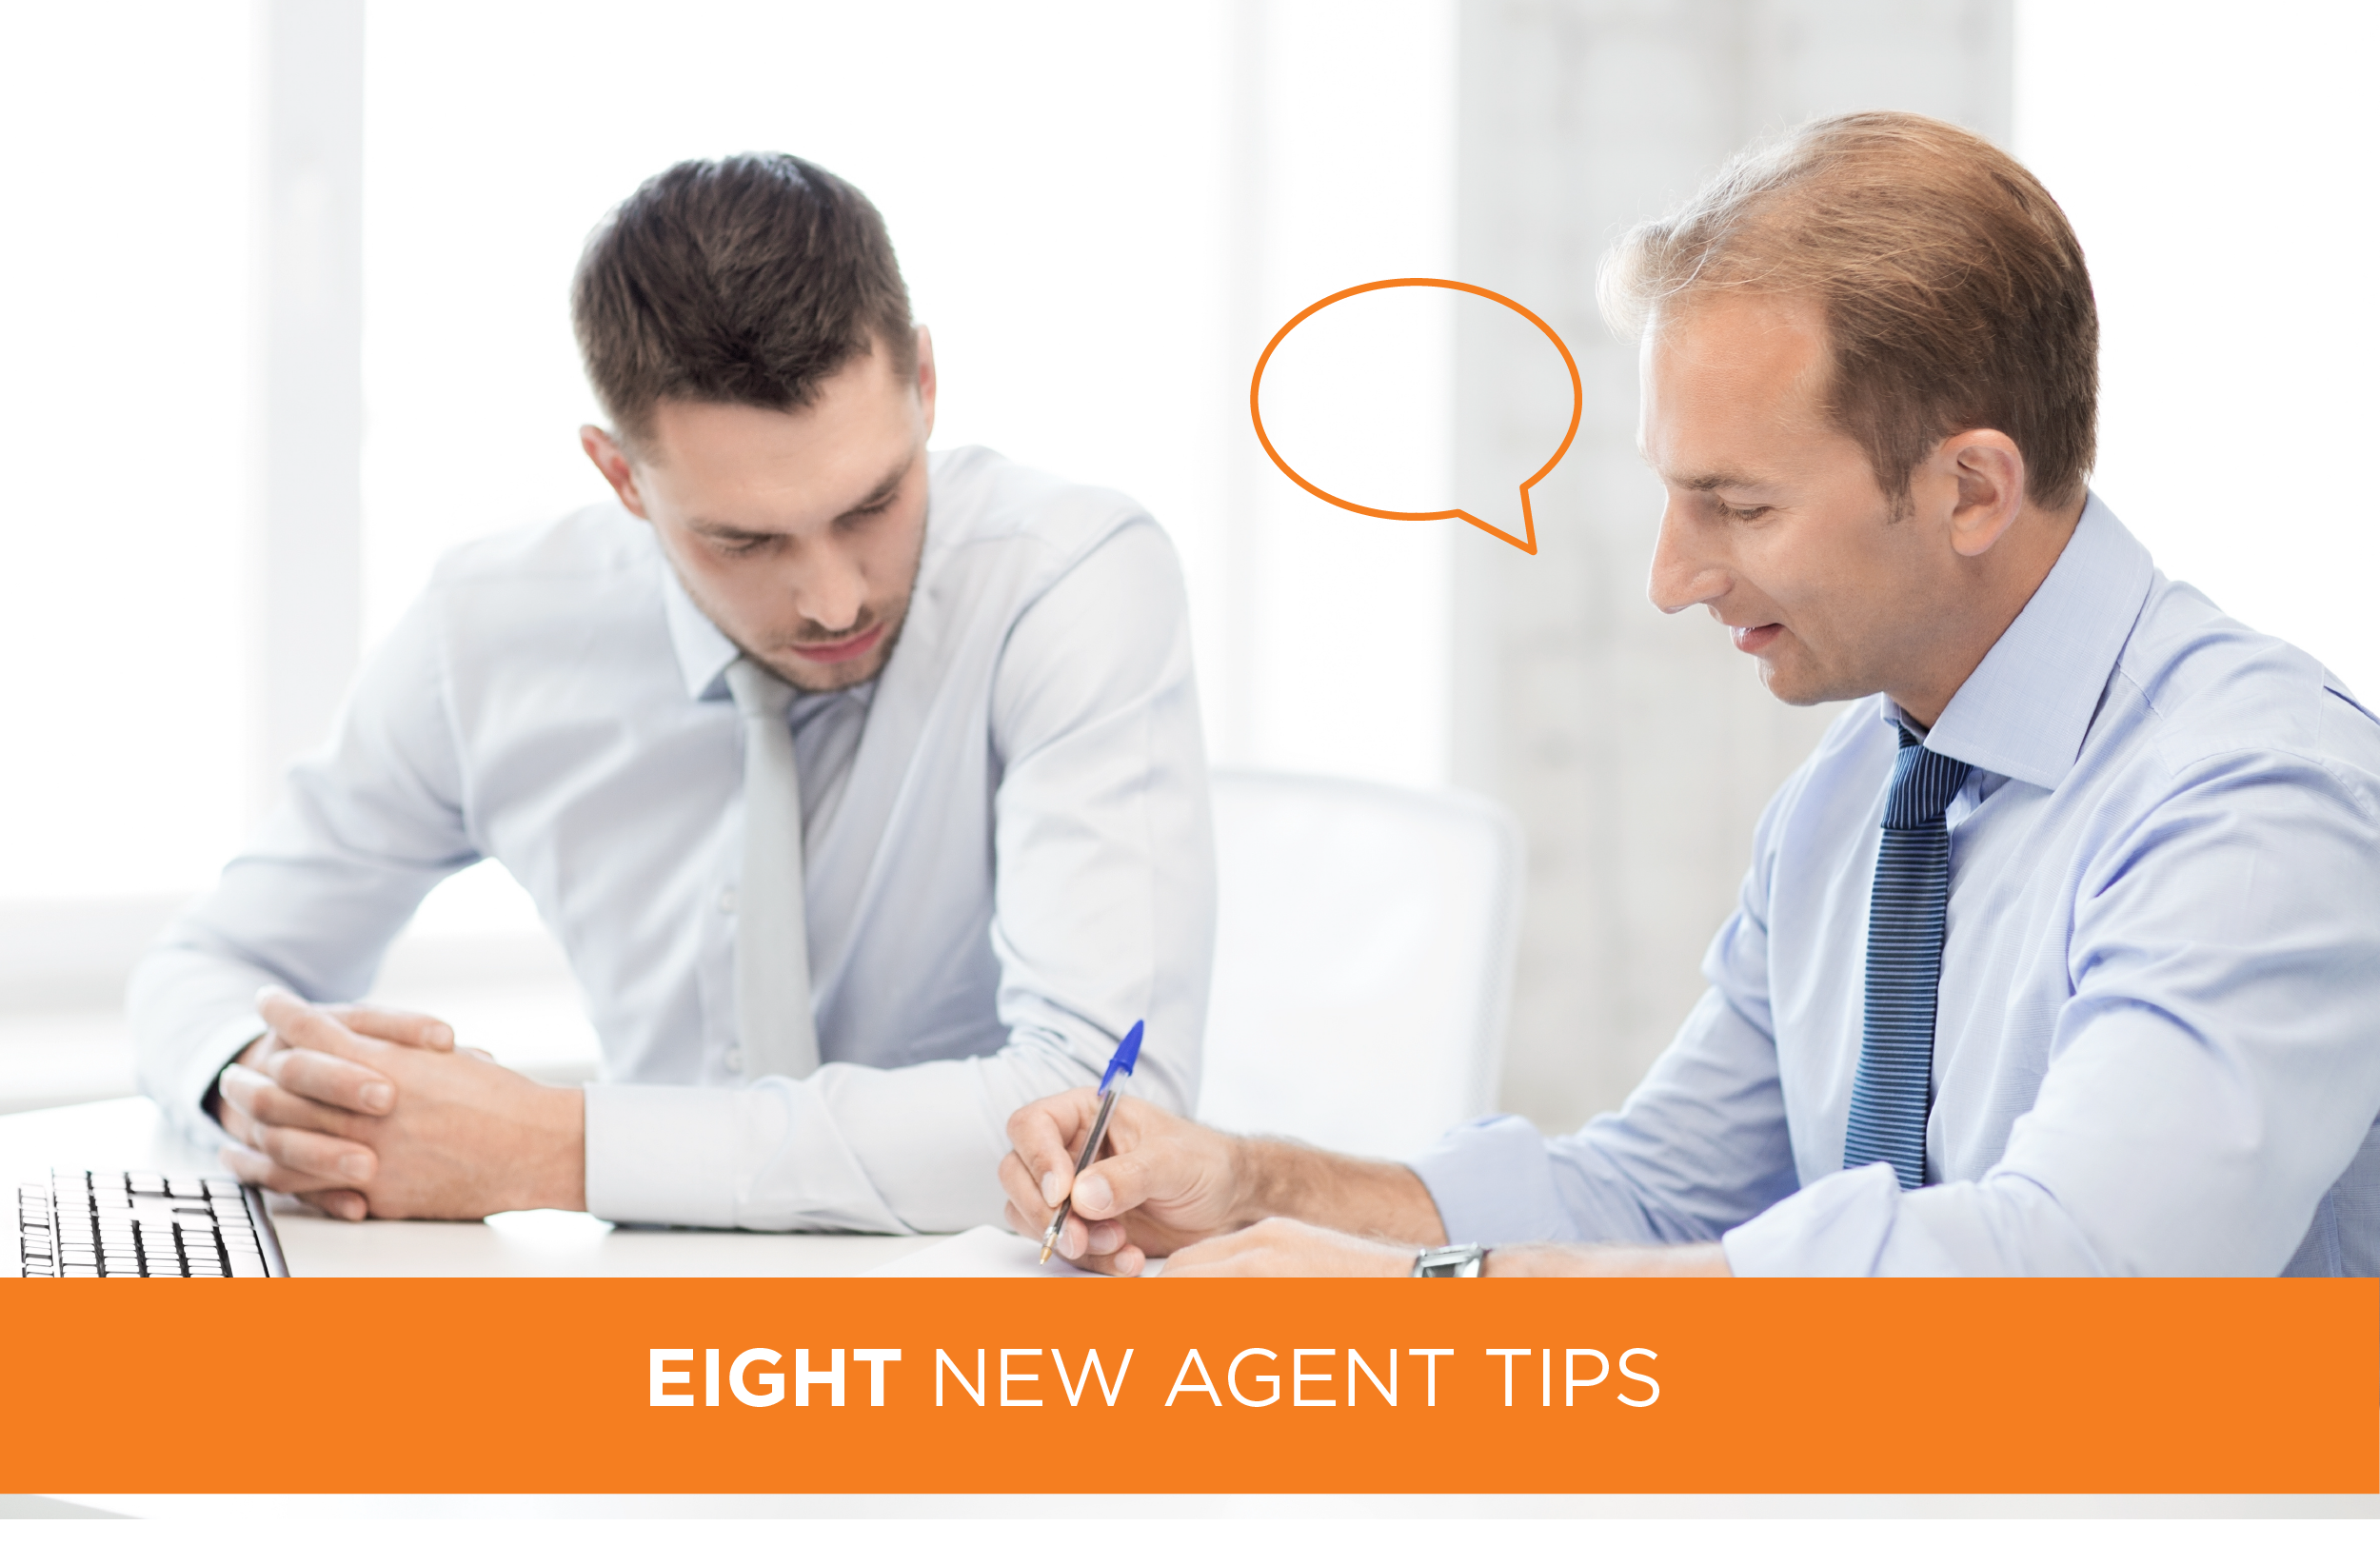 8 Tips for the New Real Estate Agent